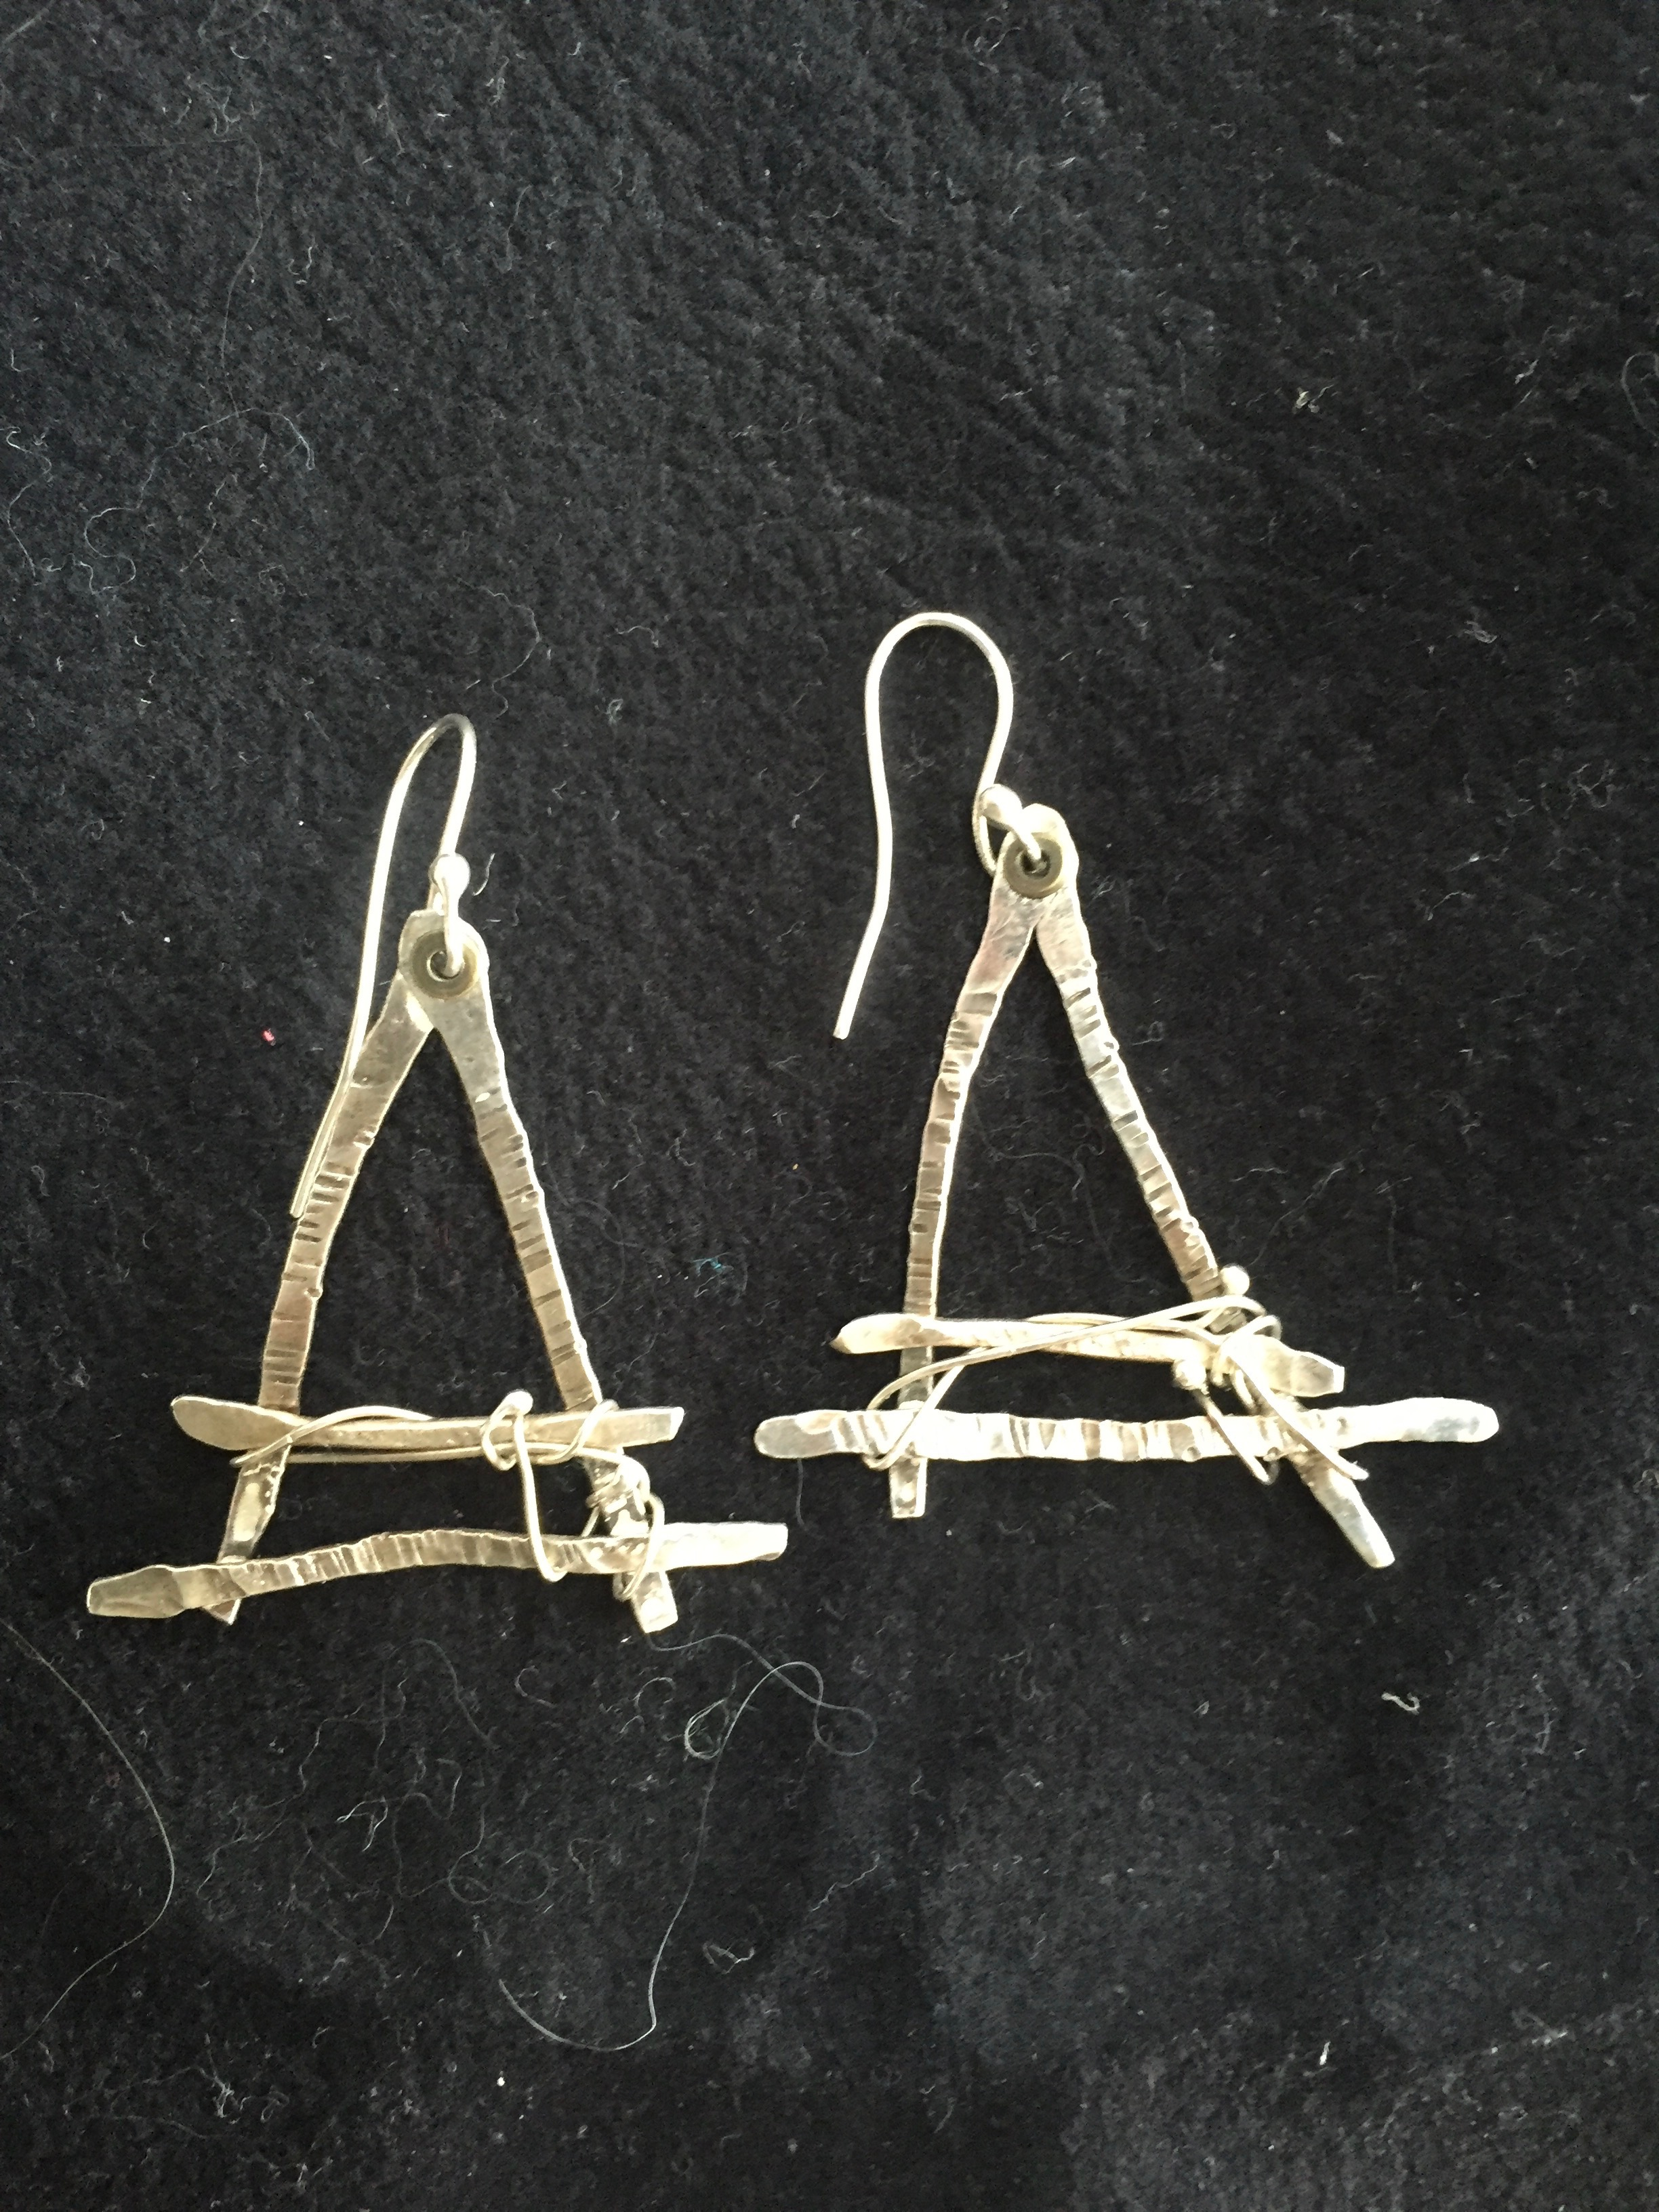 Earrings no.1   $60